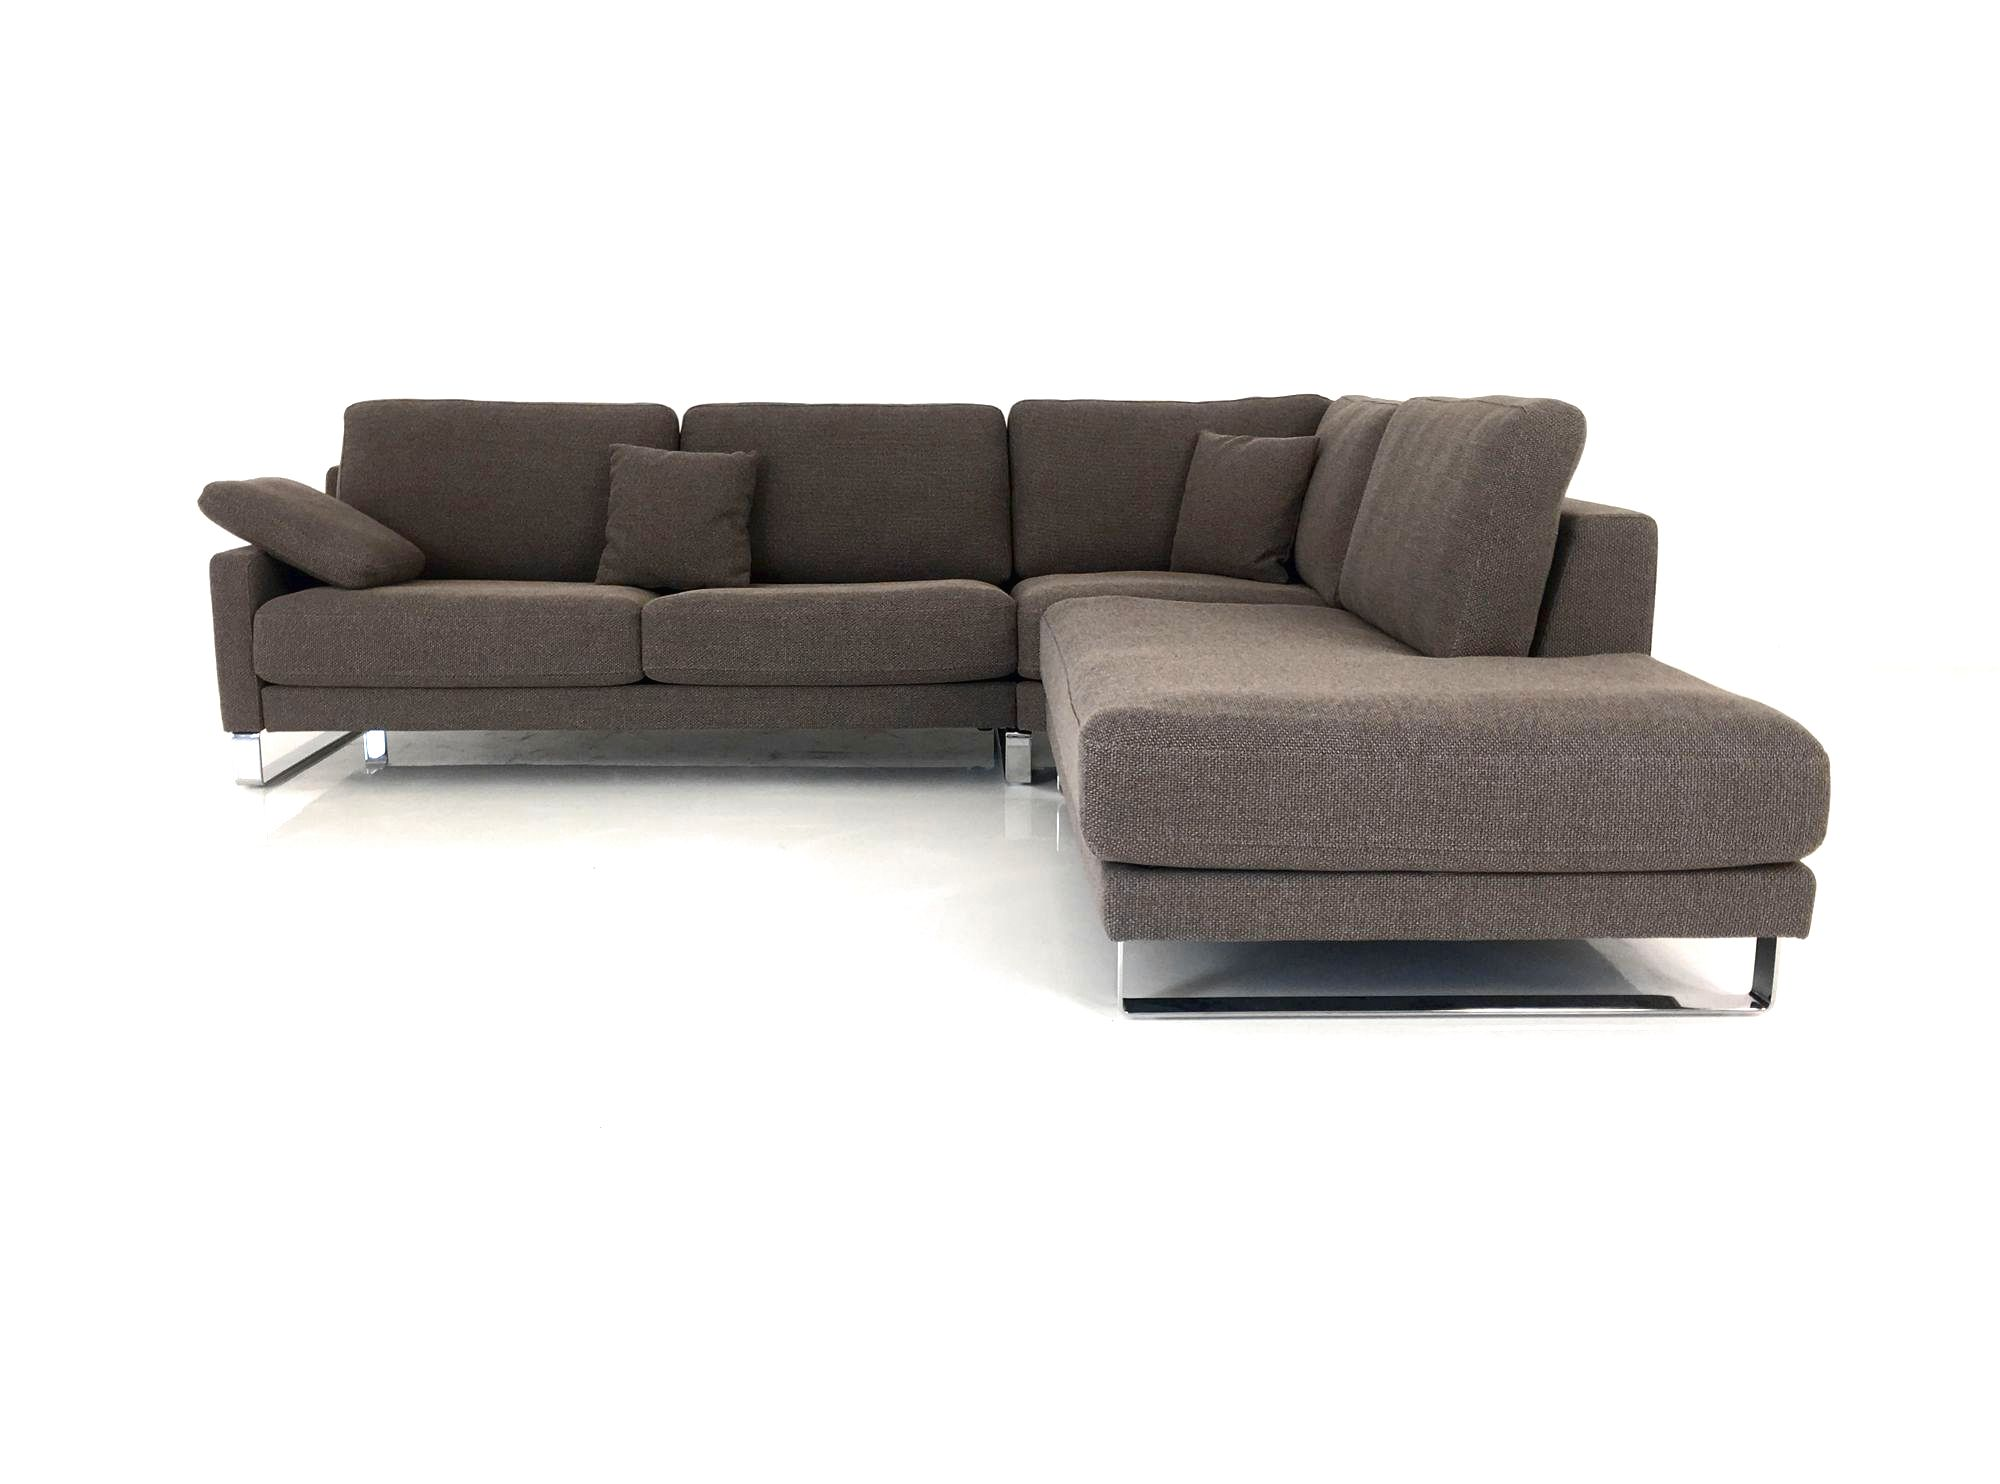 Rolf benz ego f ecksofa in stoff graubraun mit for Rolf benz essen